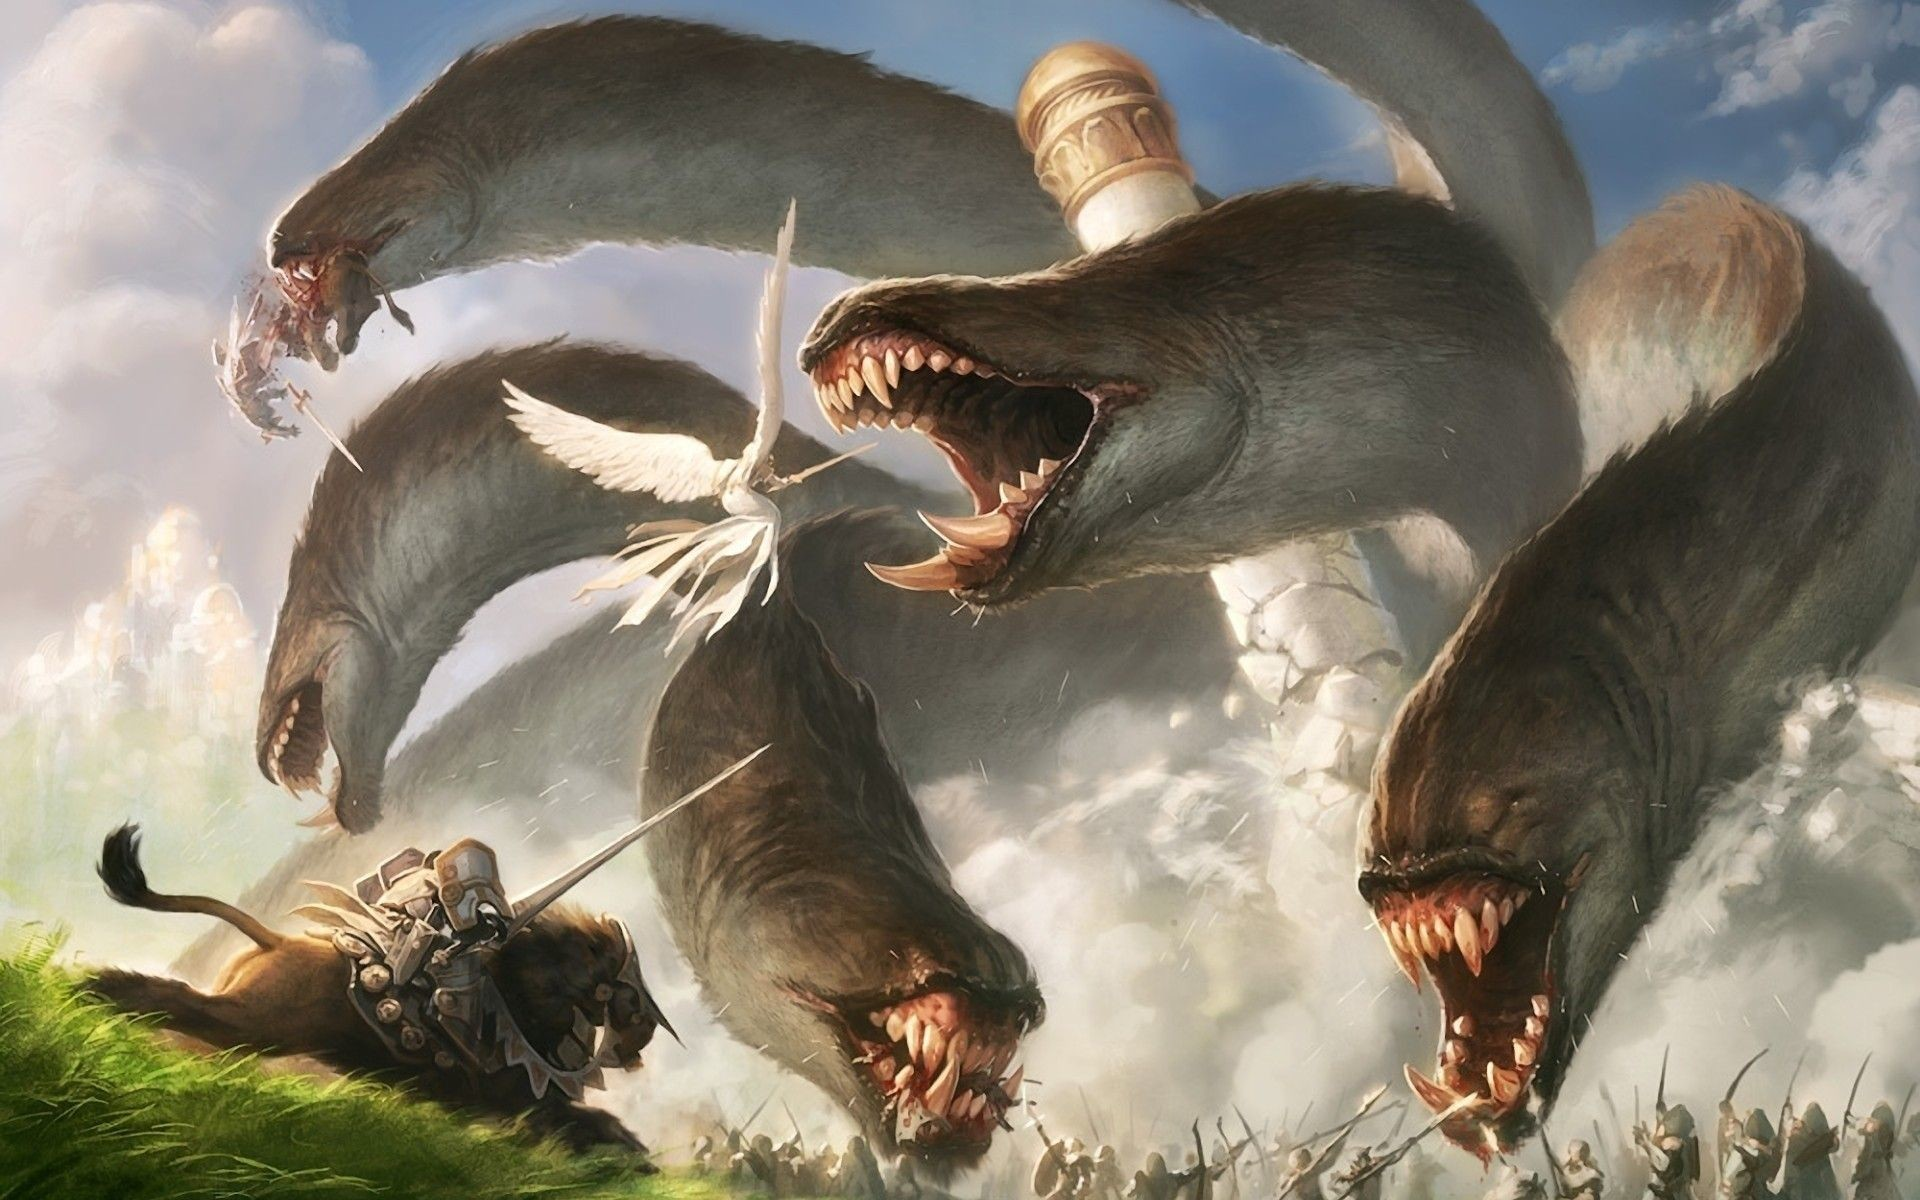 Res: 1920x1200, Magic The Gathering Wallpapers Wallpaper Cave - HD Wallpapers